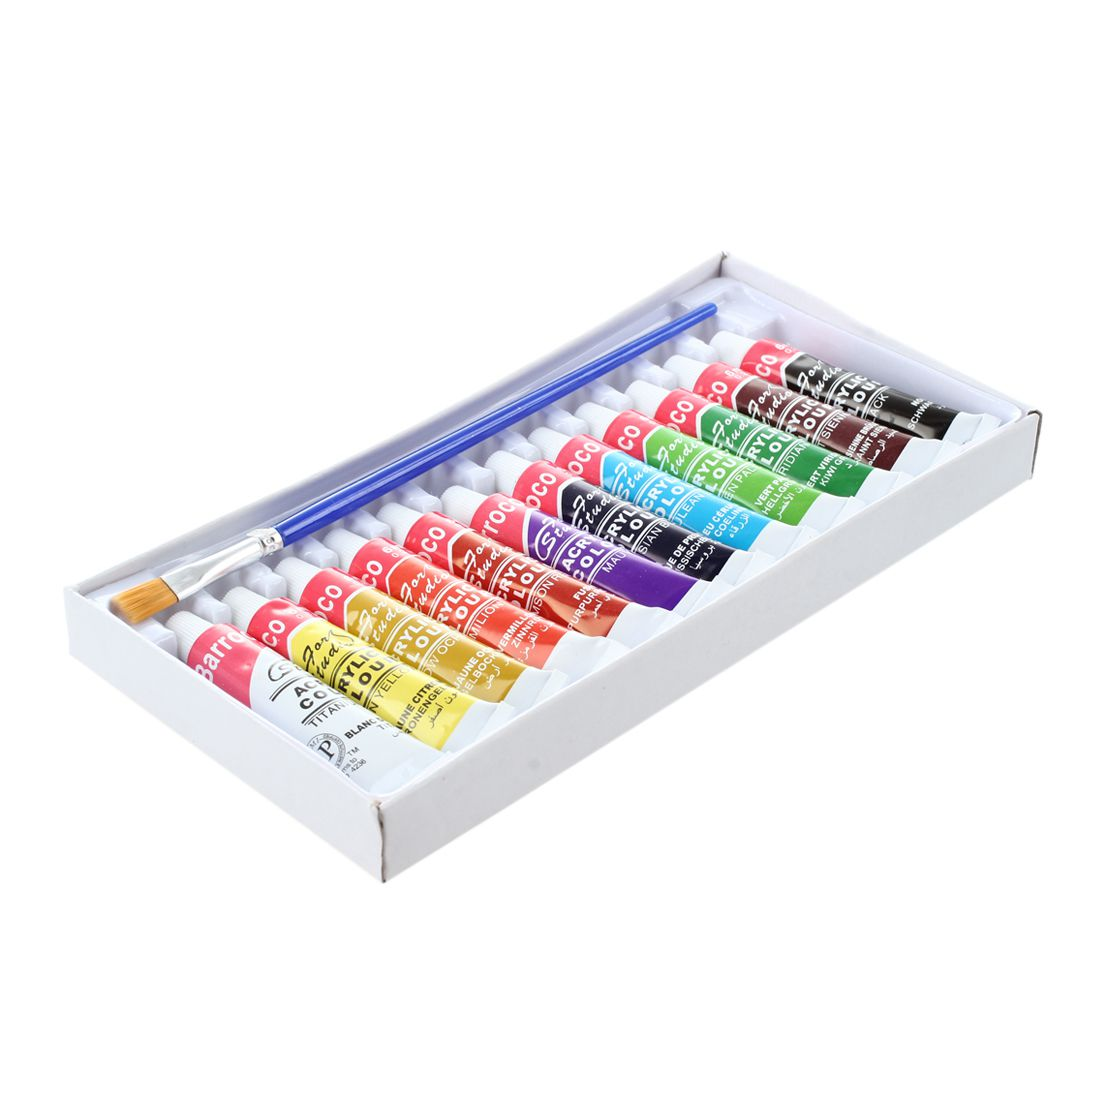 6 ML 12 Colors Professional Acrylic Paints Set Hand Painted Wall Painting Textile Paint Brightly Colored Art Supplies Brush 18 colors 12ml acrylic paints set paints wall textile spray paint fabric paint art supplies with gift brush